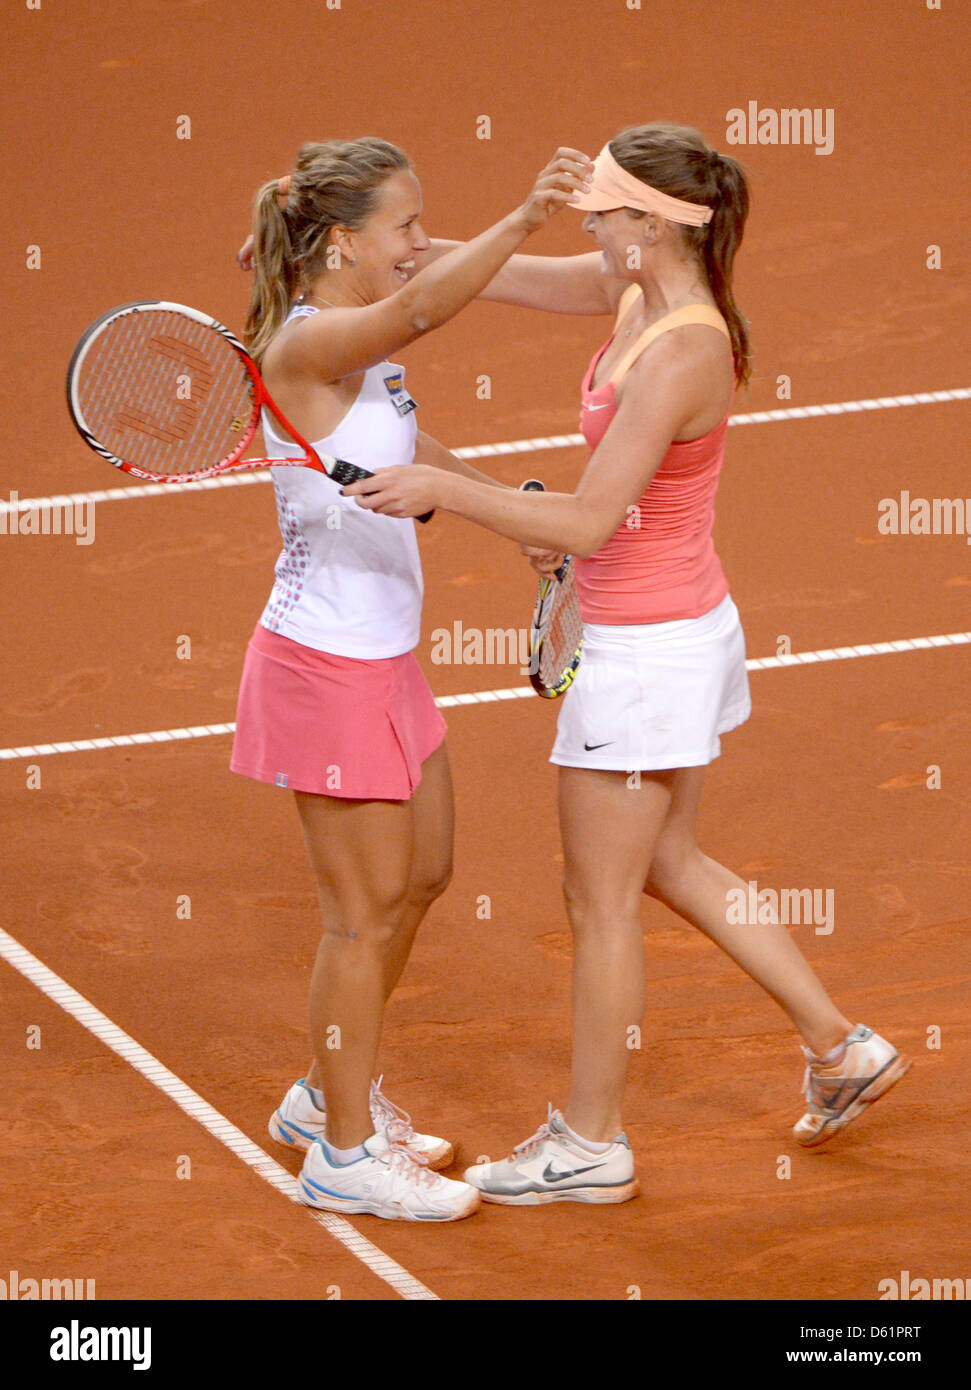 Iveta Benesova (R-L) and Barbora Zahlavova Strycova of the Czech Republic cheer after winning the final match against - Stock Image